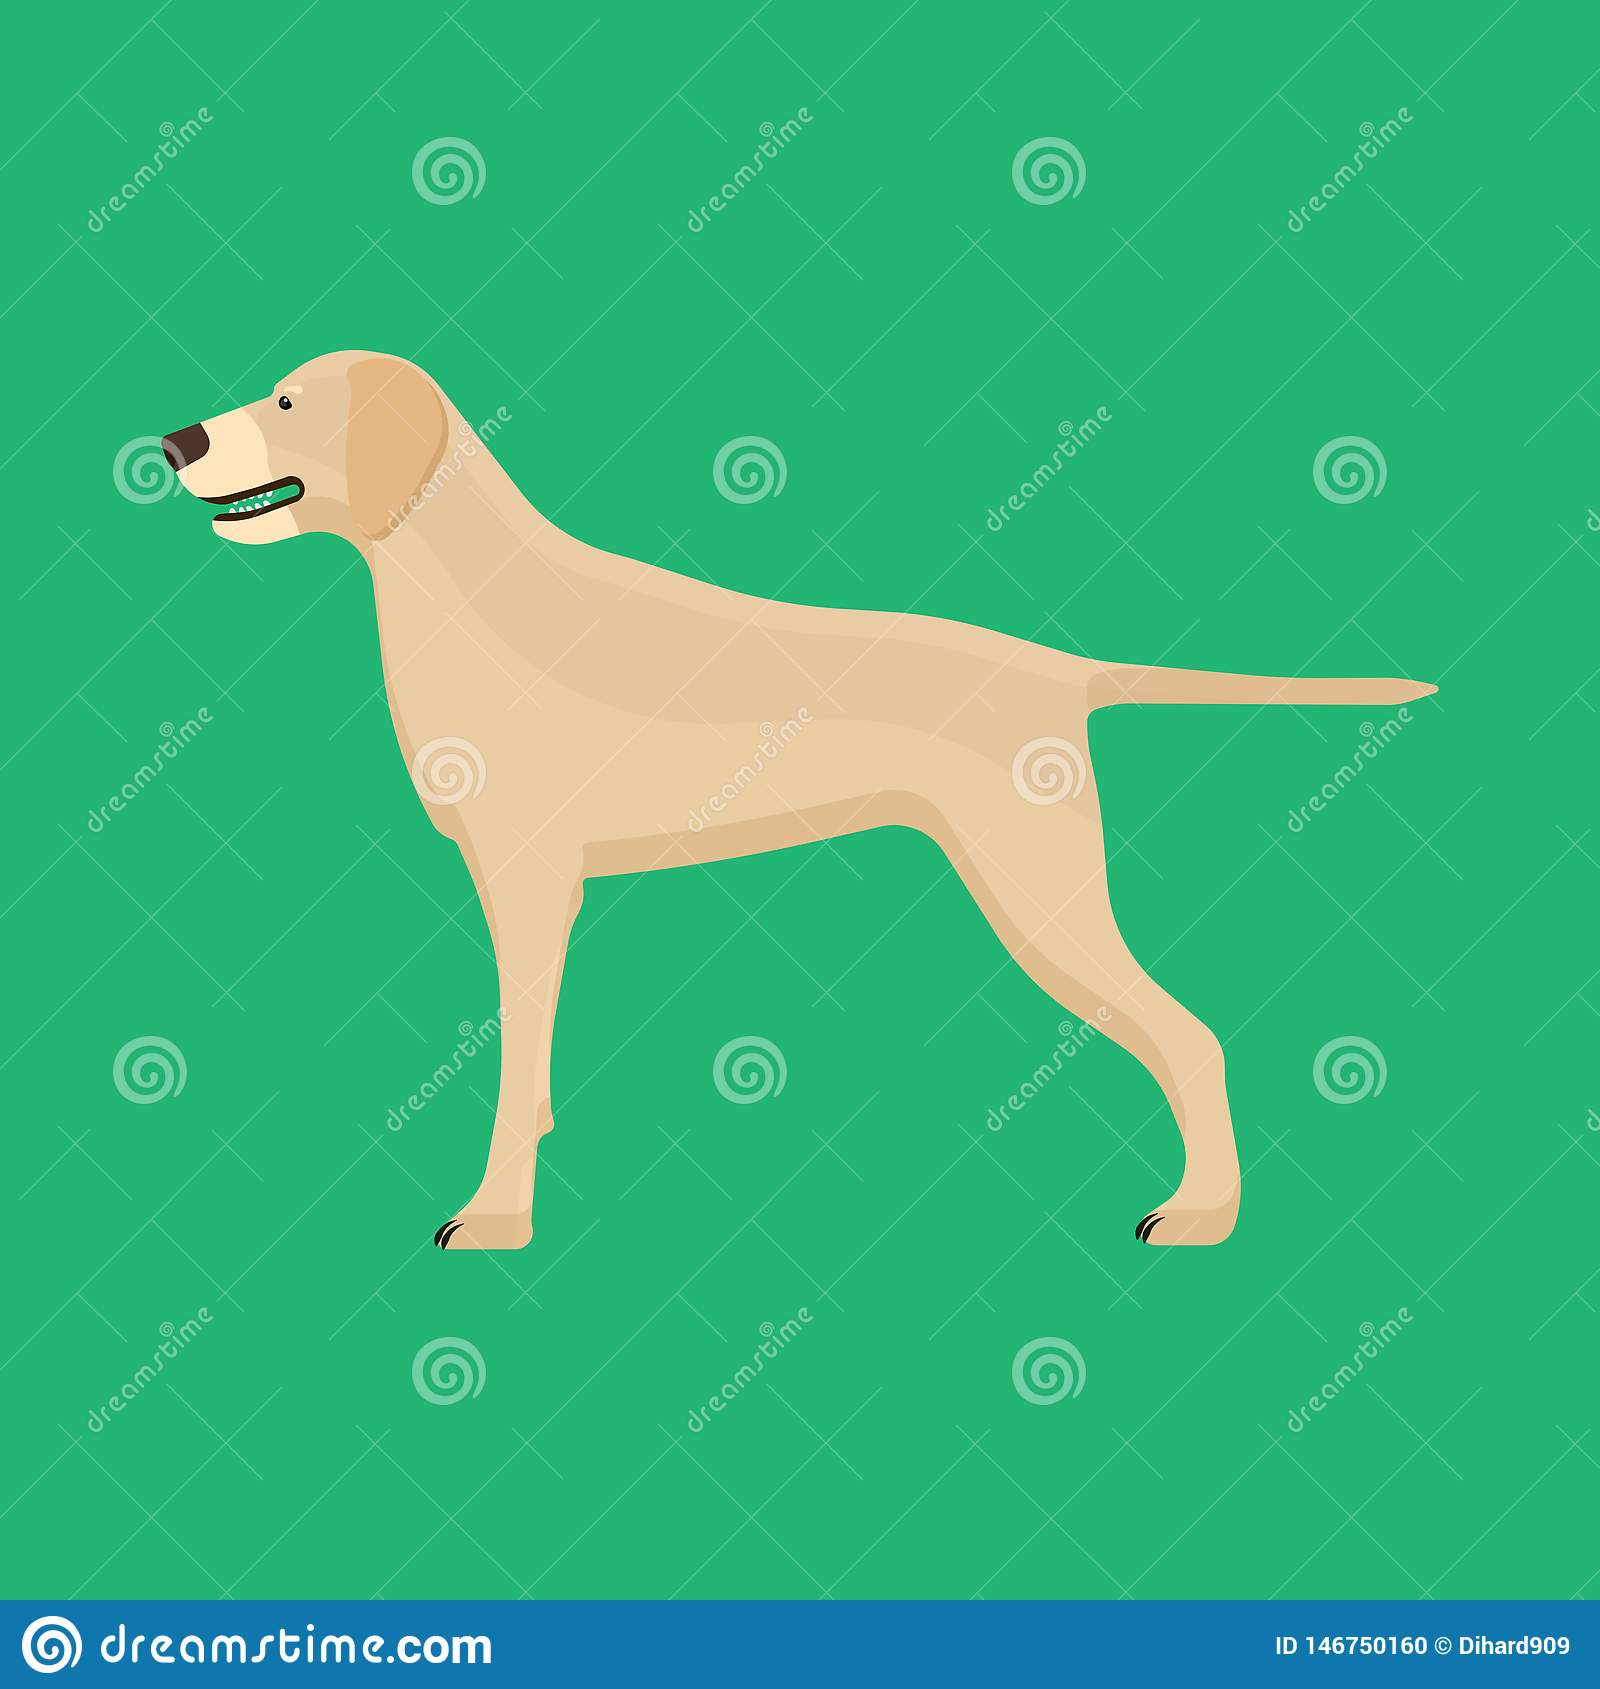 Dog labrador animal pet vector icon side view. Isolated puppy cute cartoon happy friend. Brown standing canine silhouette